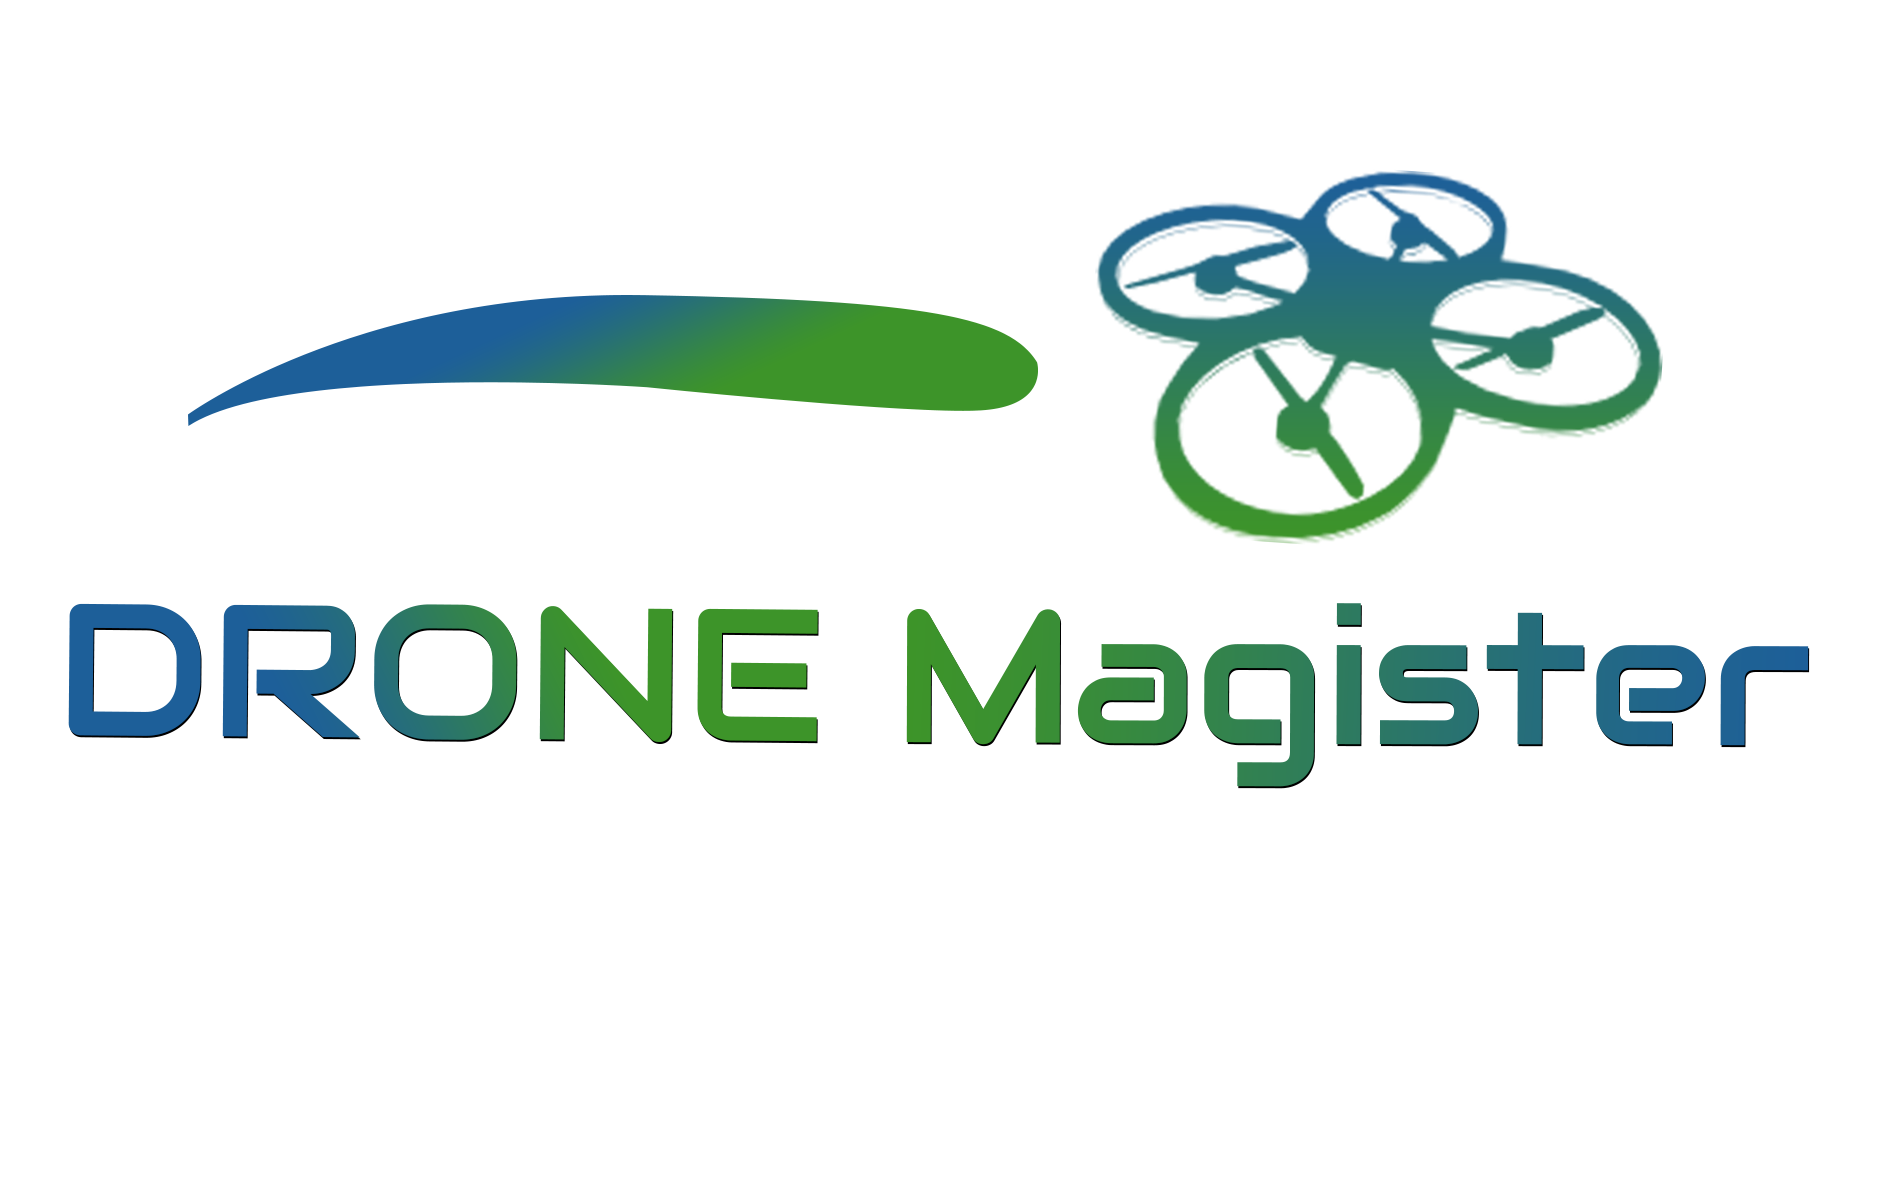 Drone Magister